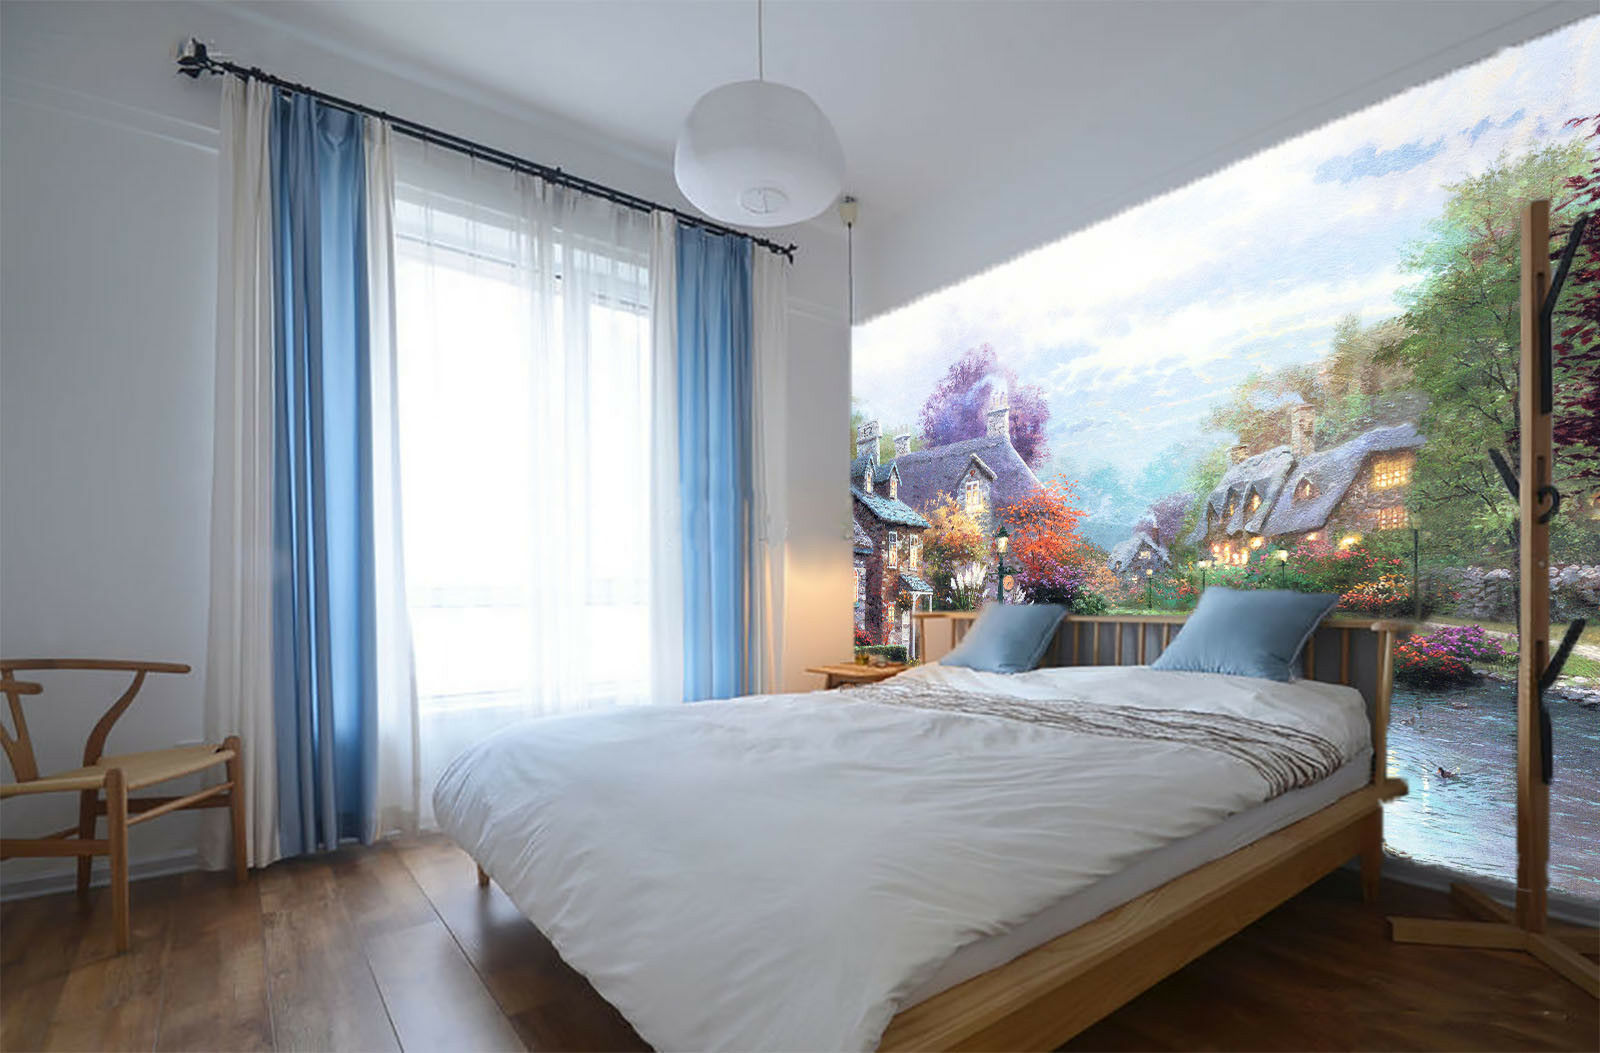 3D Riverside Houses 563 Wall Paper Wall Print Decal Wall Deco Indoor Mural Carly